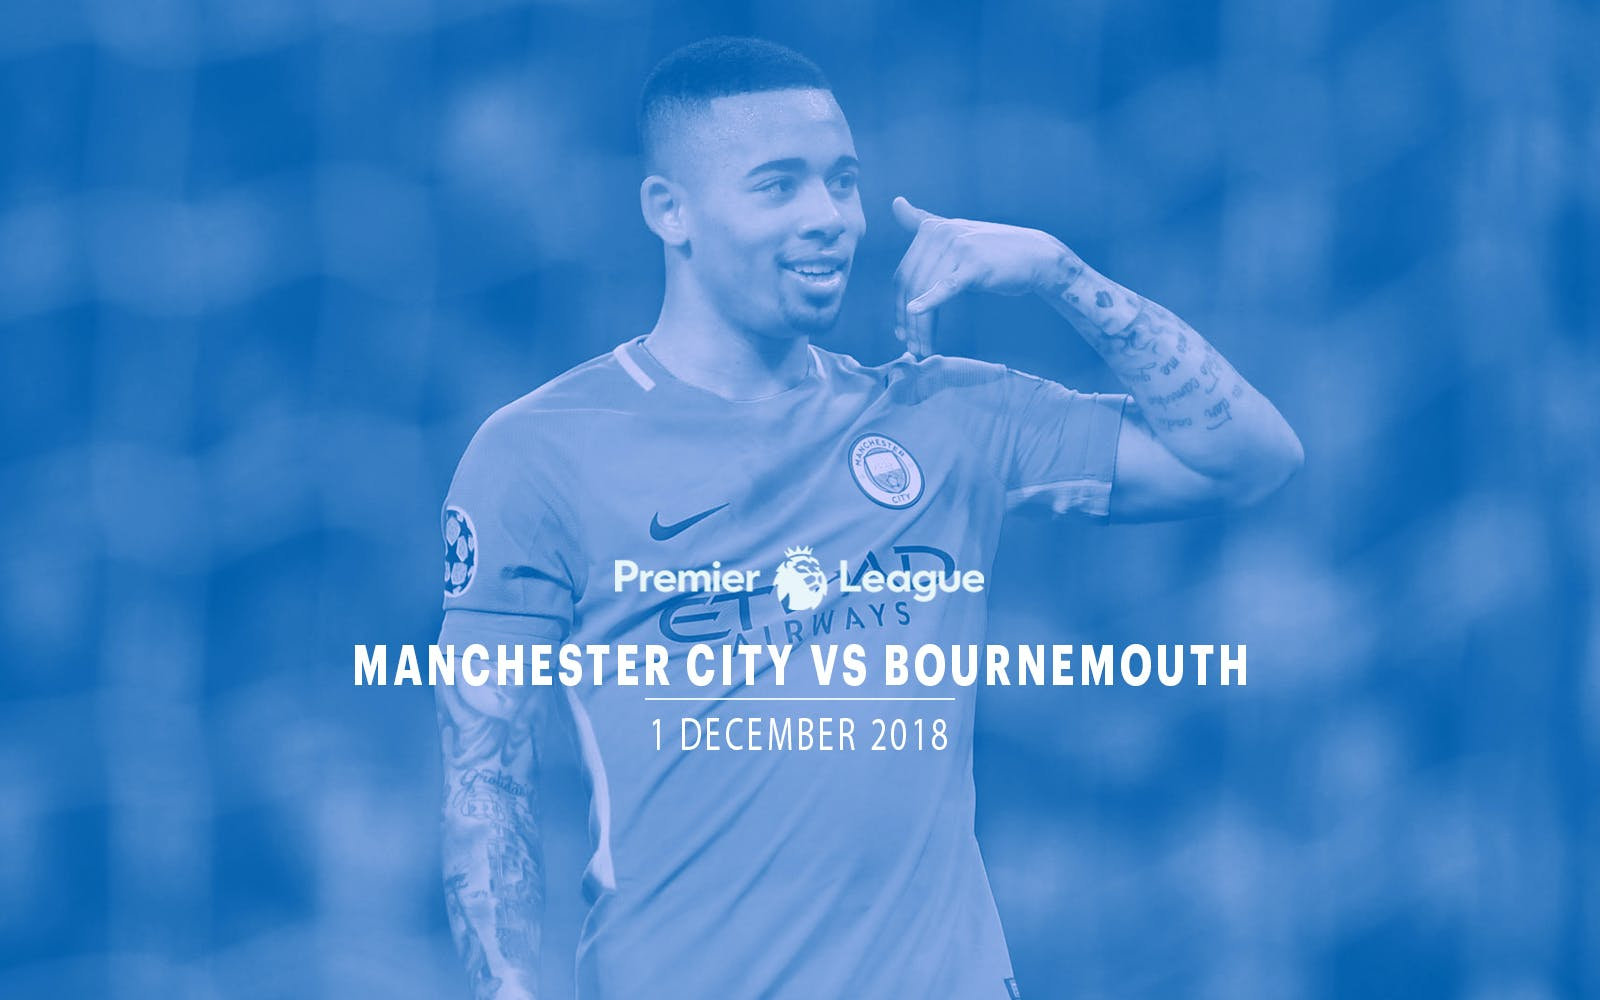 Manchester City vs Bournemouth - 1st Dec'18